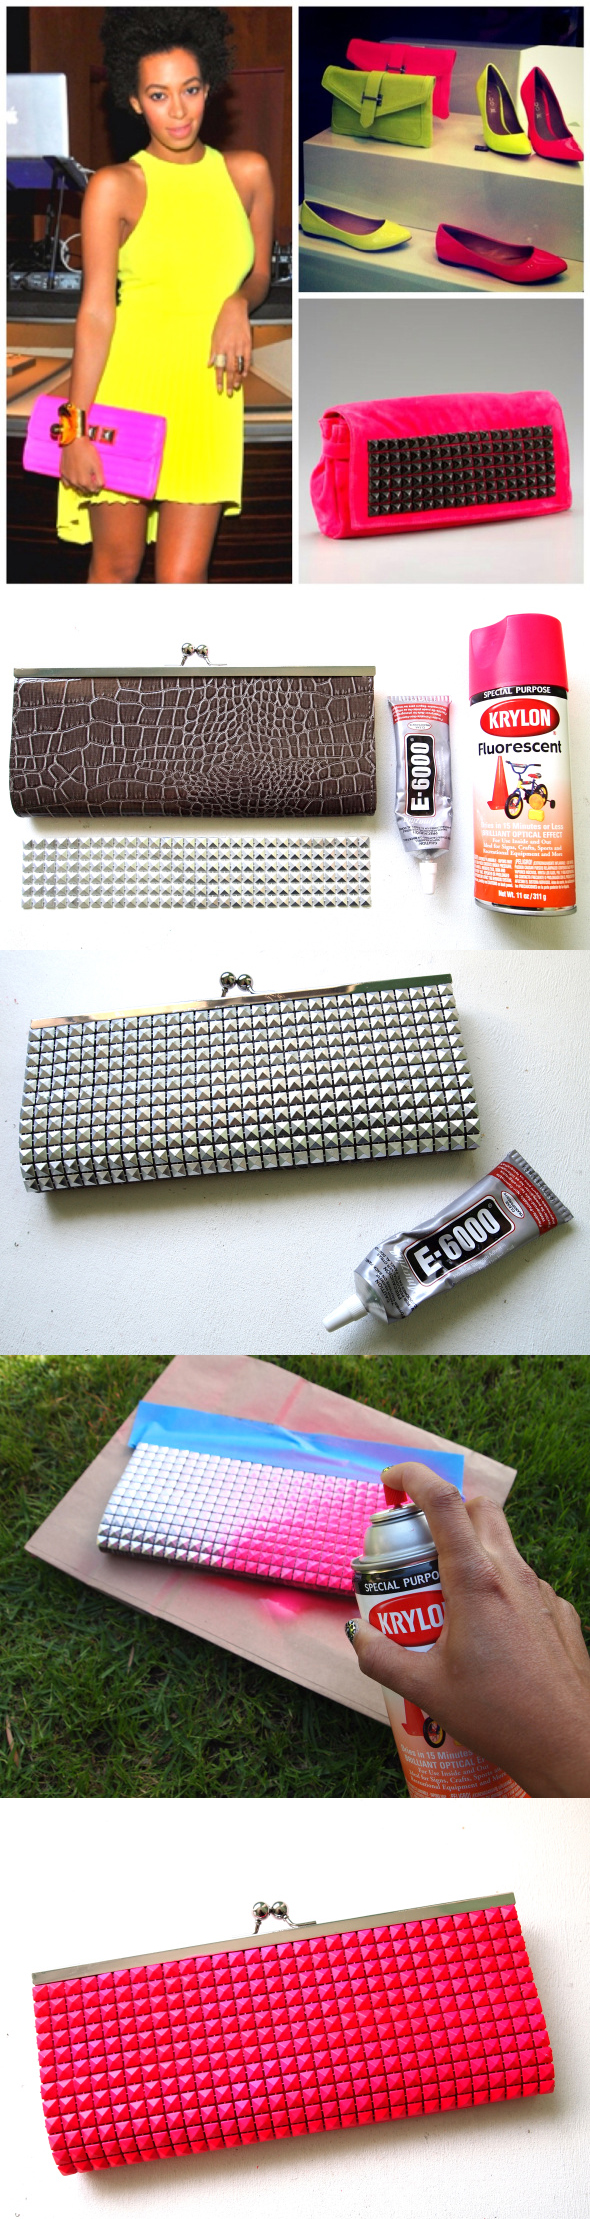 DIY Neon Stud Clutch